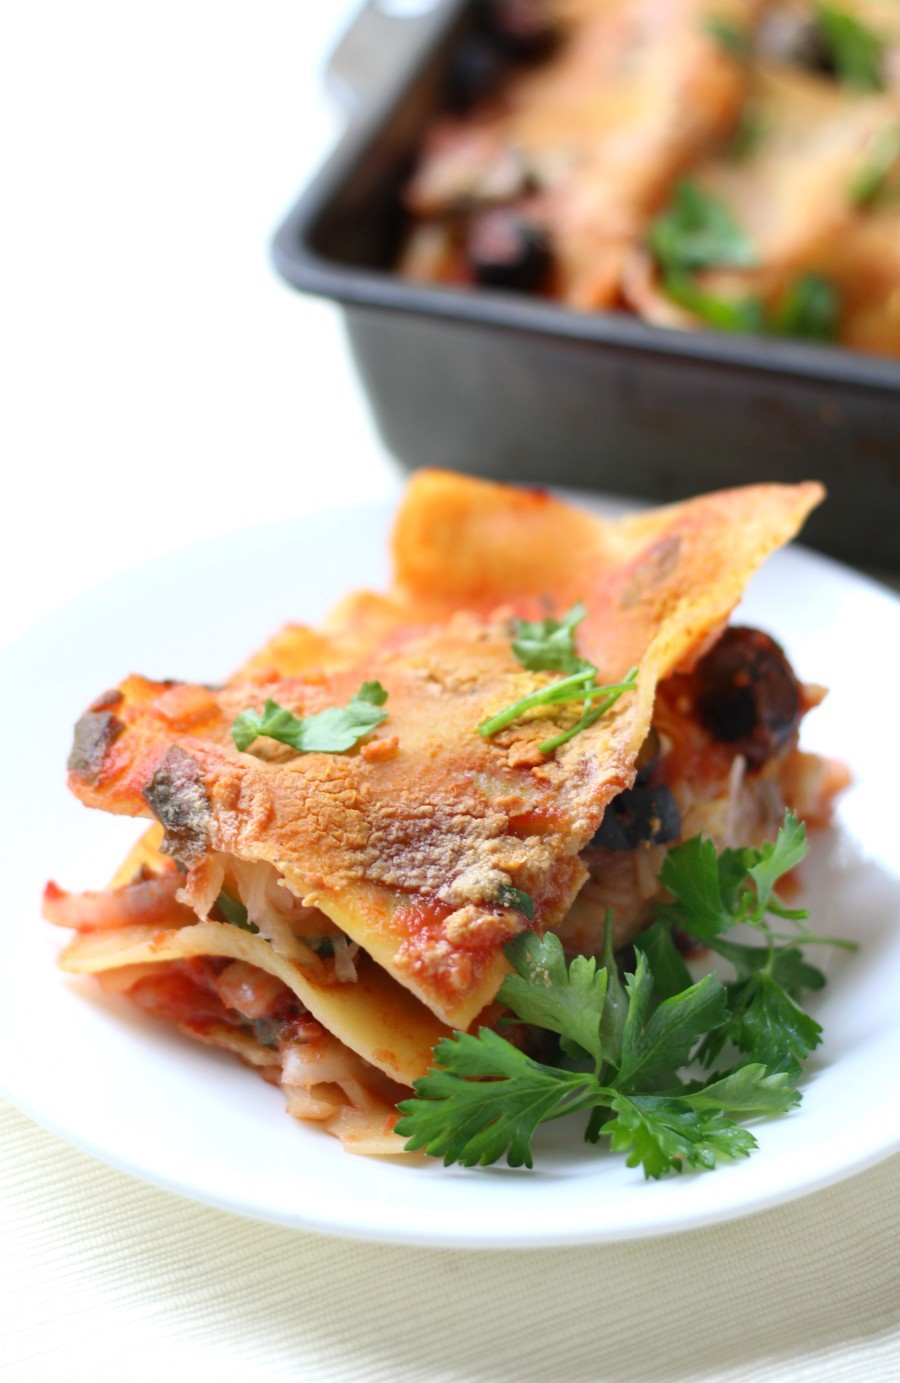 Small Batch Gluten-Free Vegetable Lasagna (Vegan, Allergy-Free) | Strength and Sunshine @RebeccaGF666 A quick and easy, healthy and lightened up version of a classic Italian dinner! This Small Batch Gluten-Free Vegetable Lasagna is vegan, top 8 allergy-free, packed with veggies, homemade tomato sauce, and on the table in 30 minutes! A recipe the whole family will love for those busy weeknight meal dilemmas! #glutenfree #vegan #lasagna #dinner #pasta #strengthandsunshine